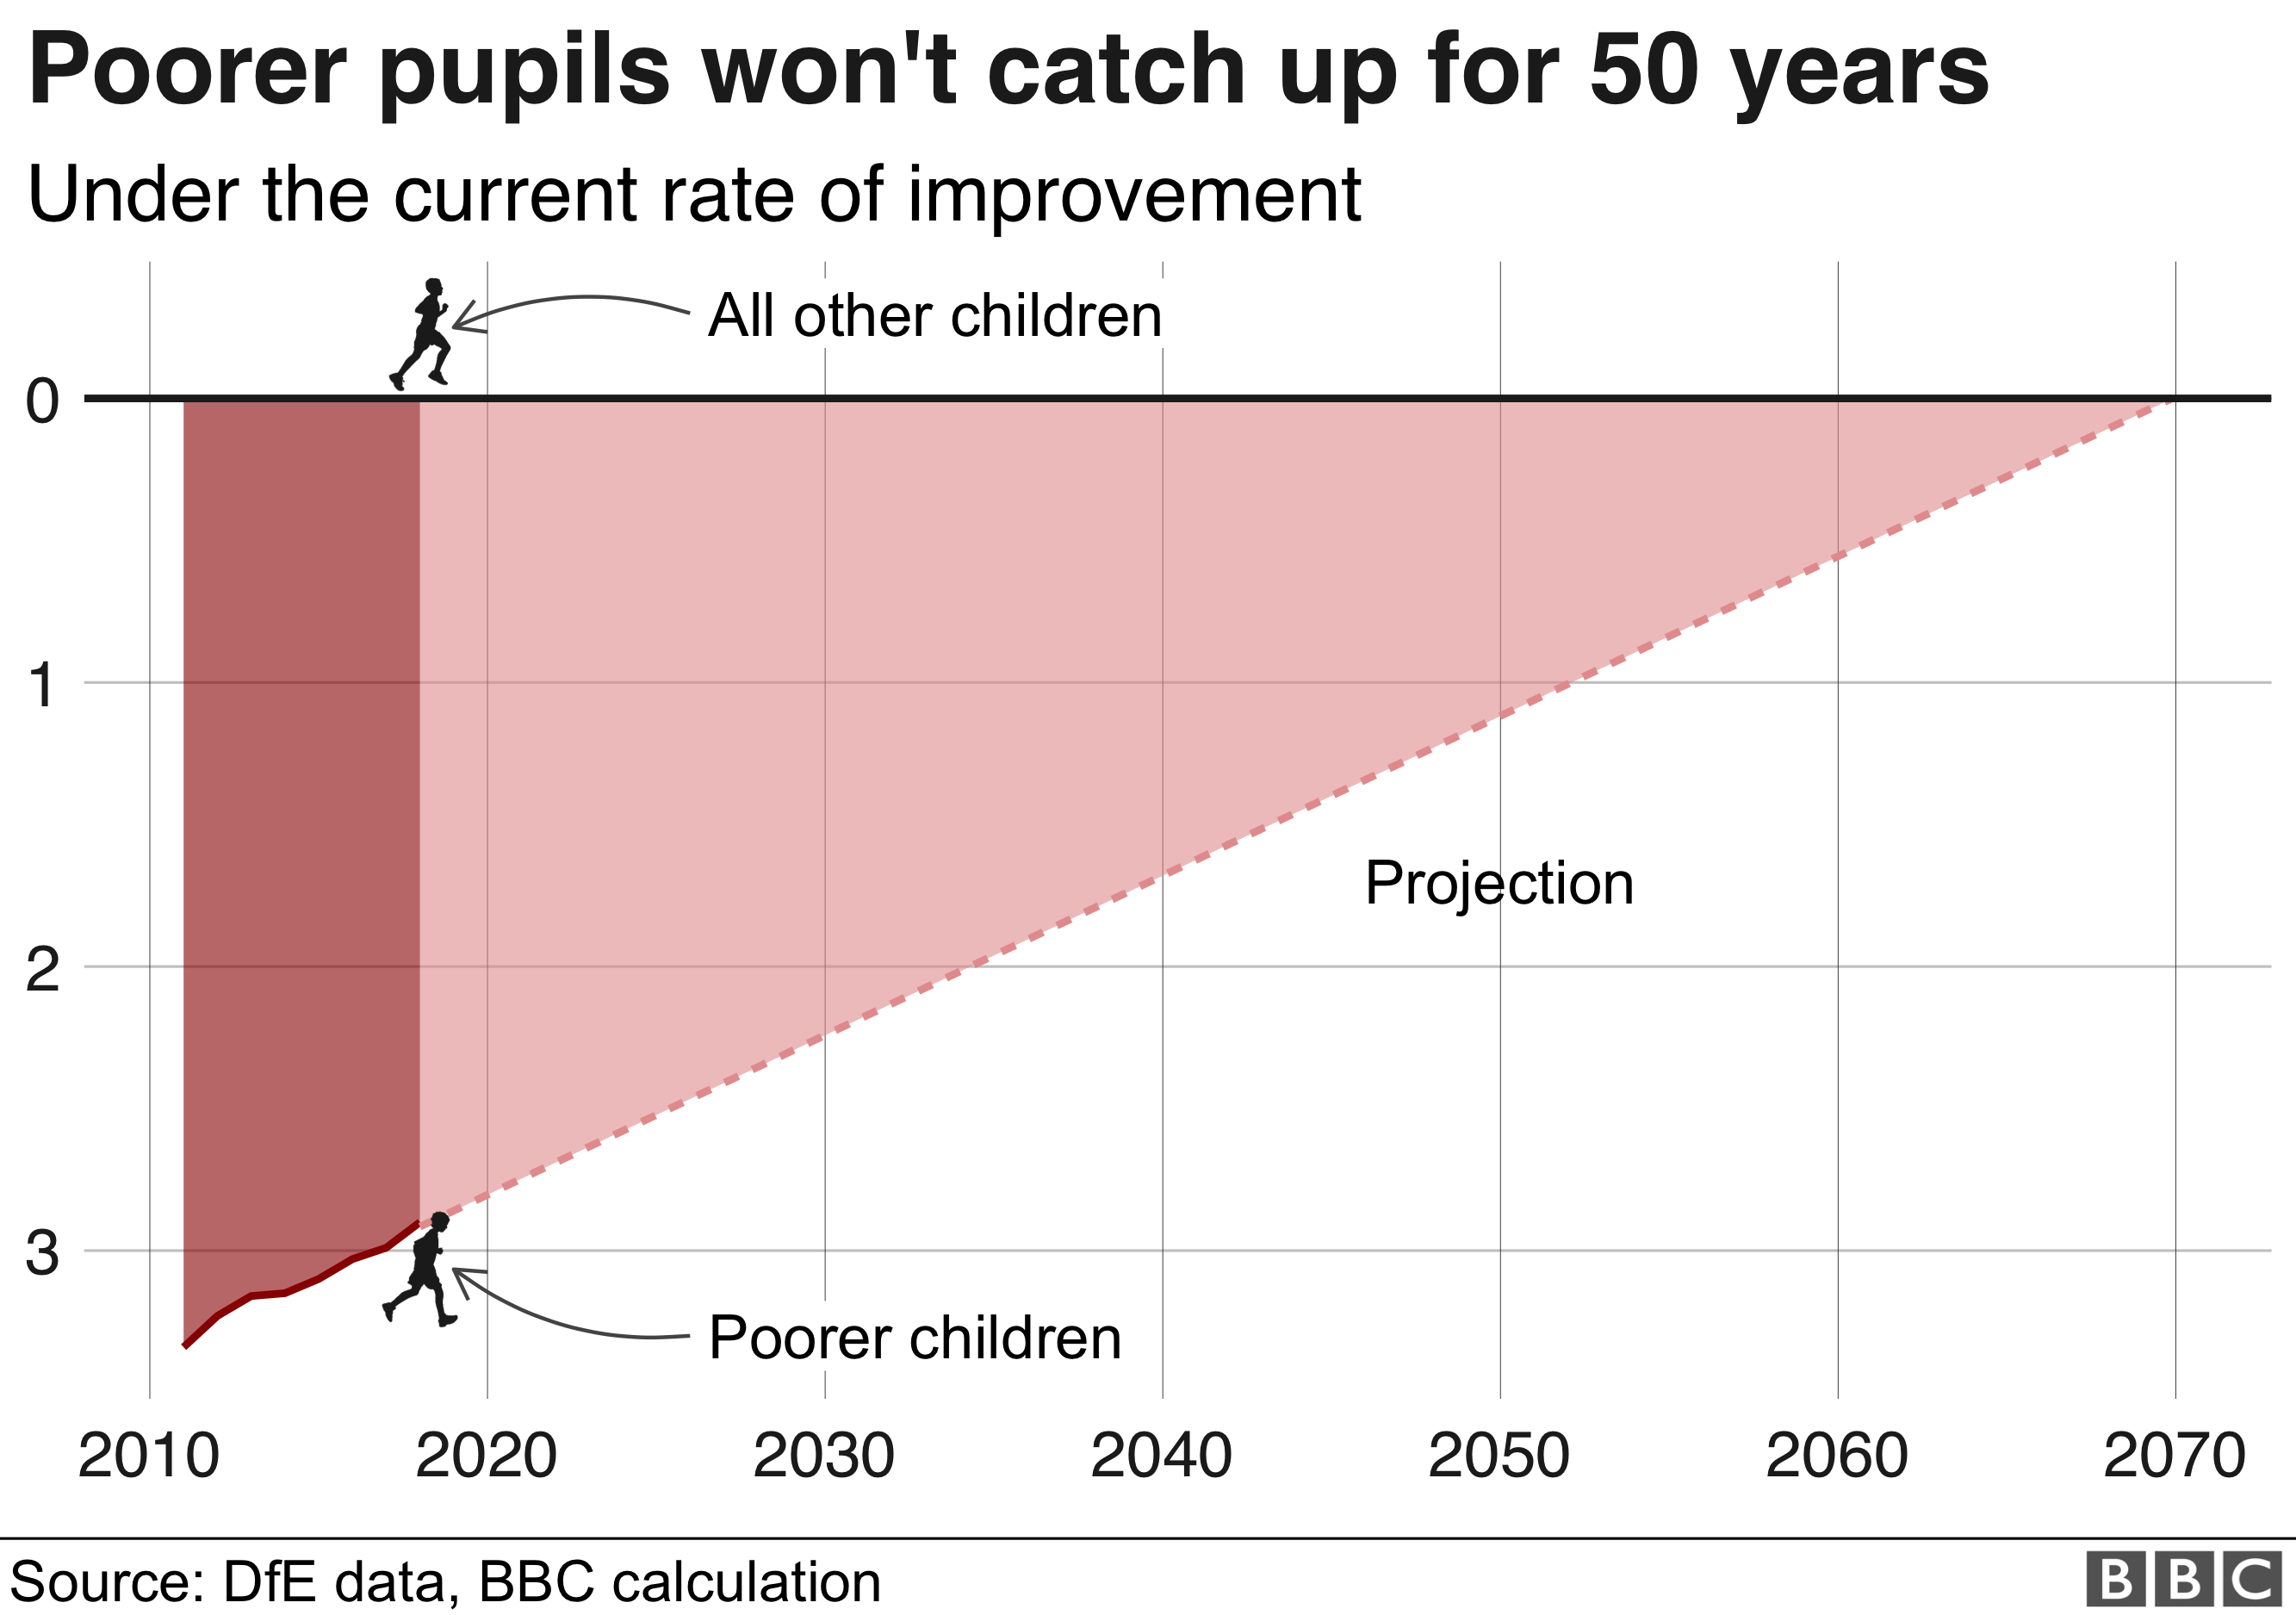 Chart showing gap in attainment